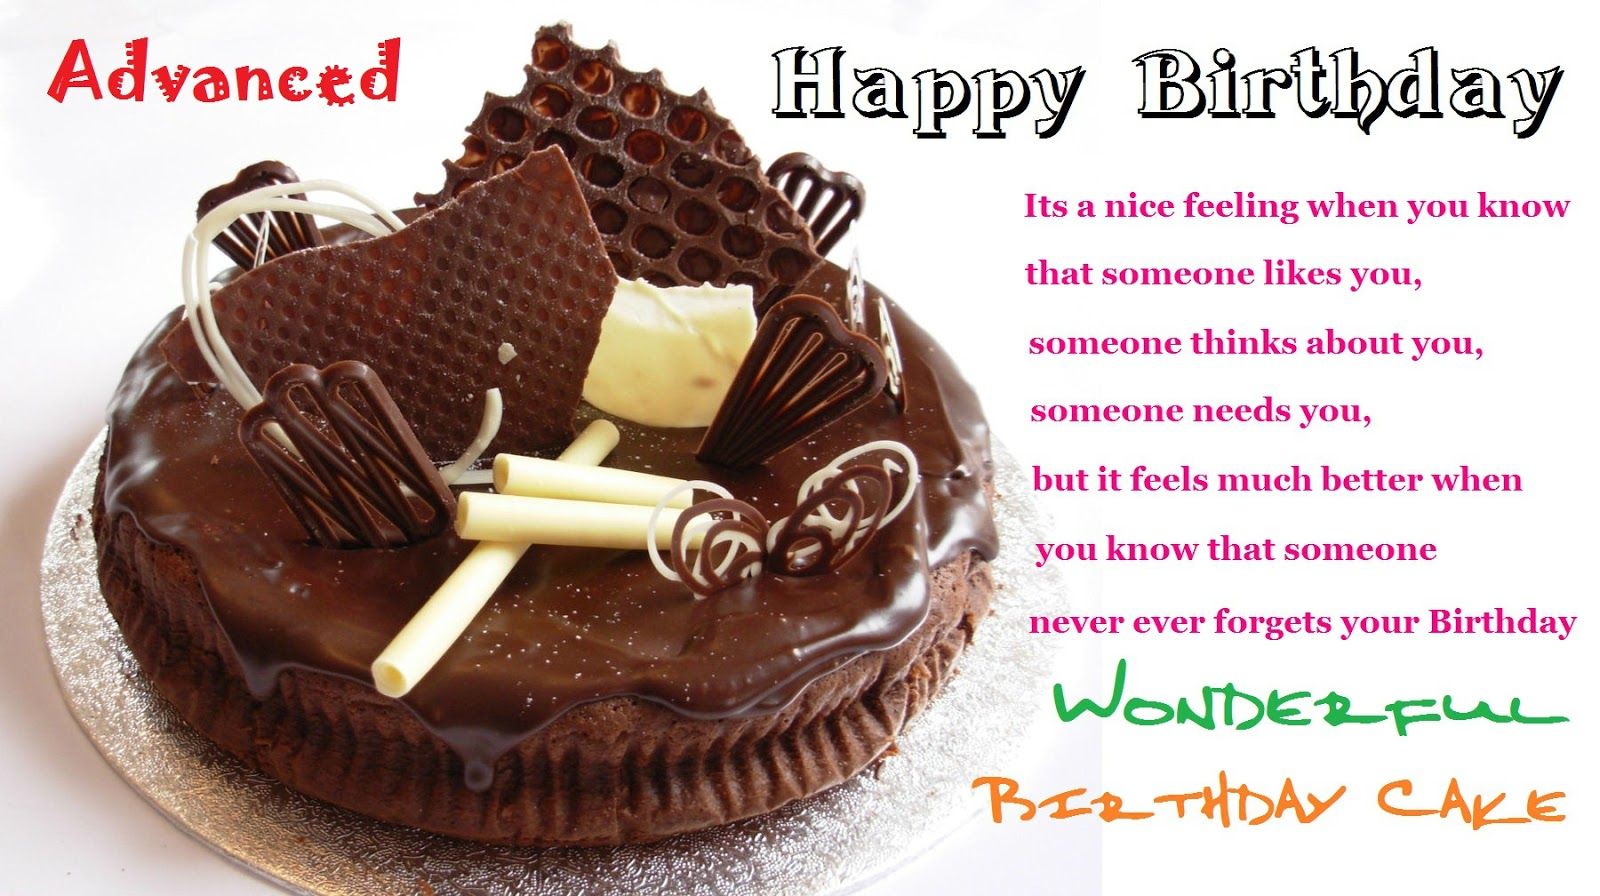 Photos Of Birthday Cake And Wishes : Khushi For Life: Advanced Birthday Wishes, Birthday Cake ...